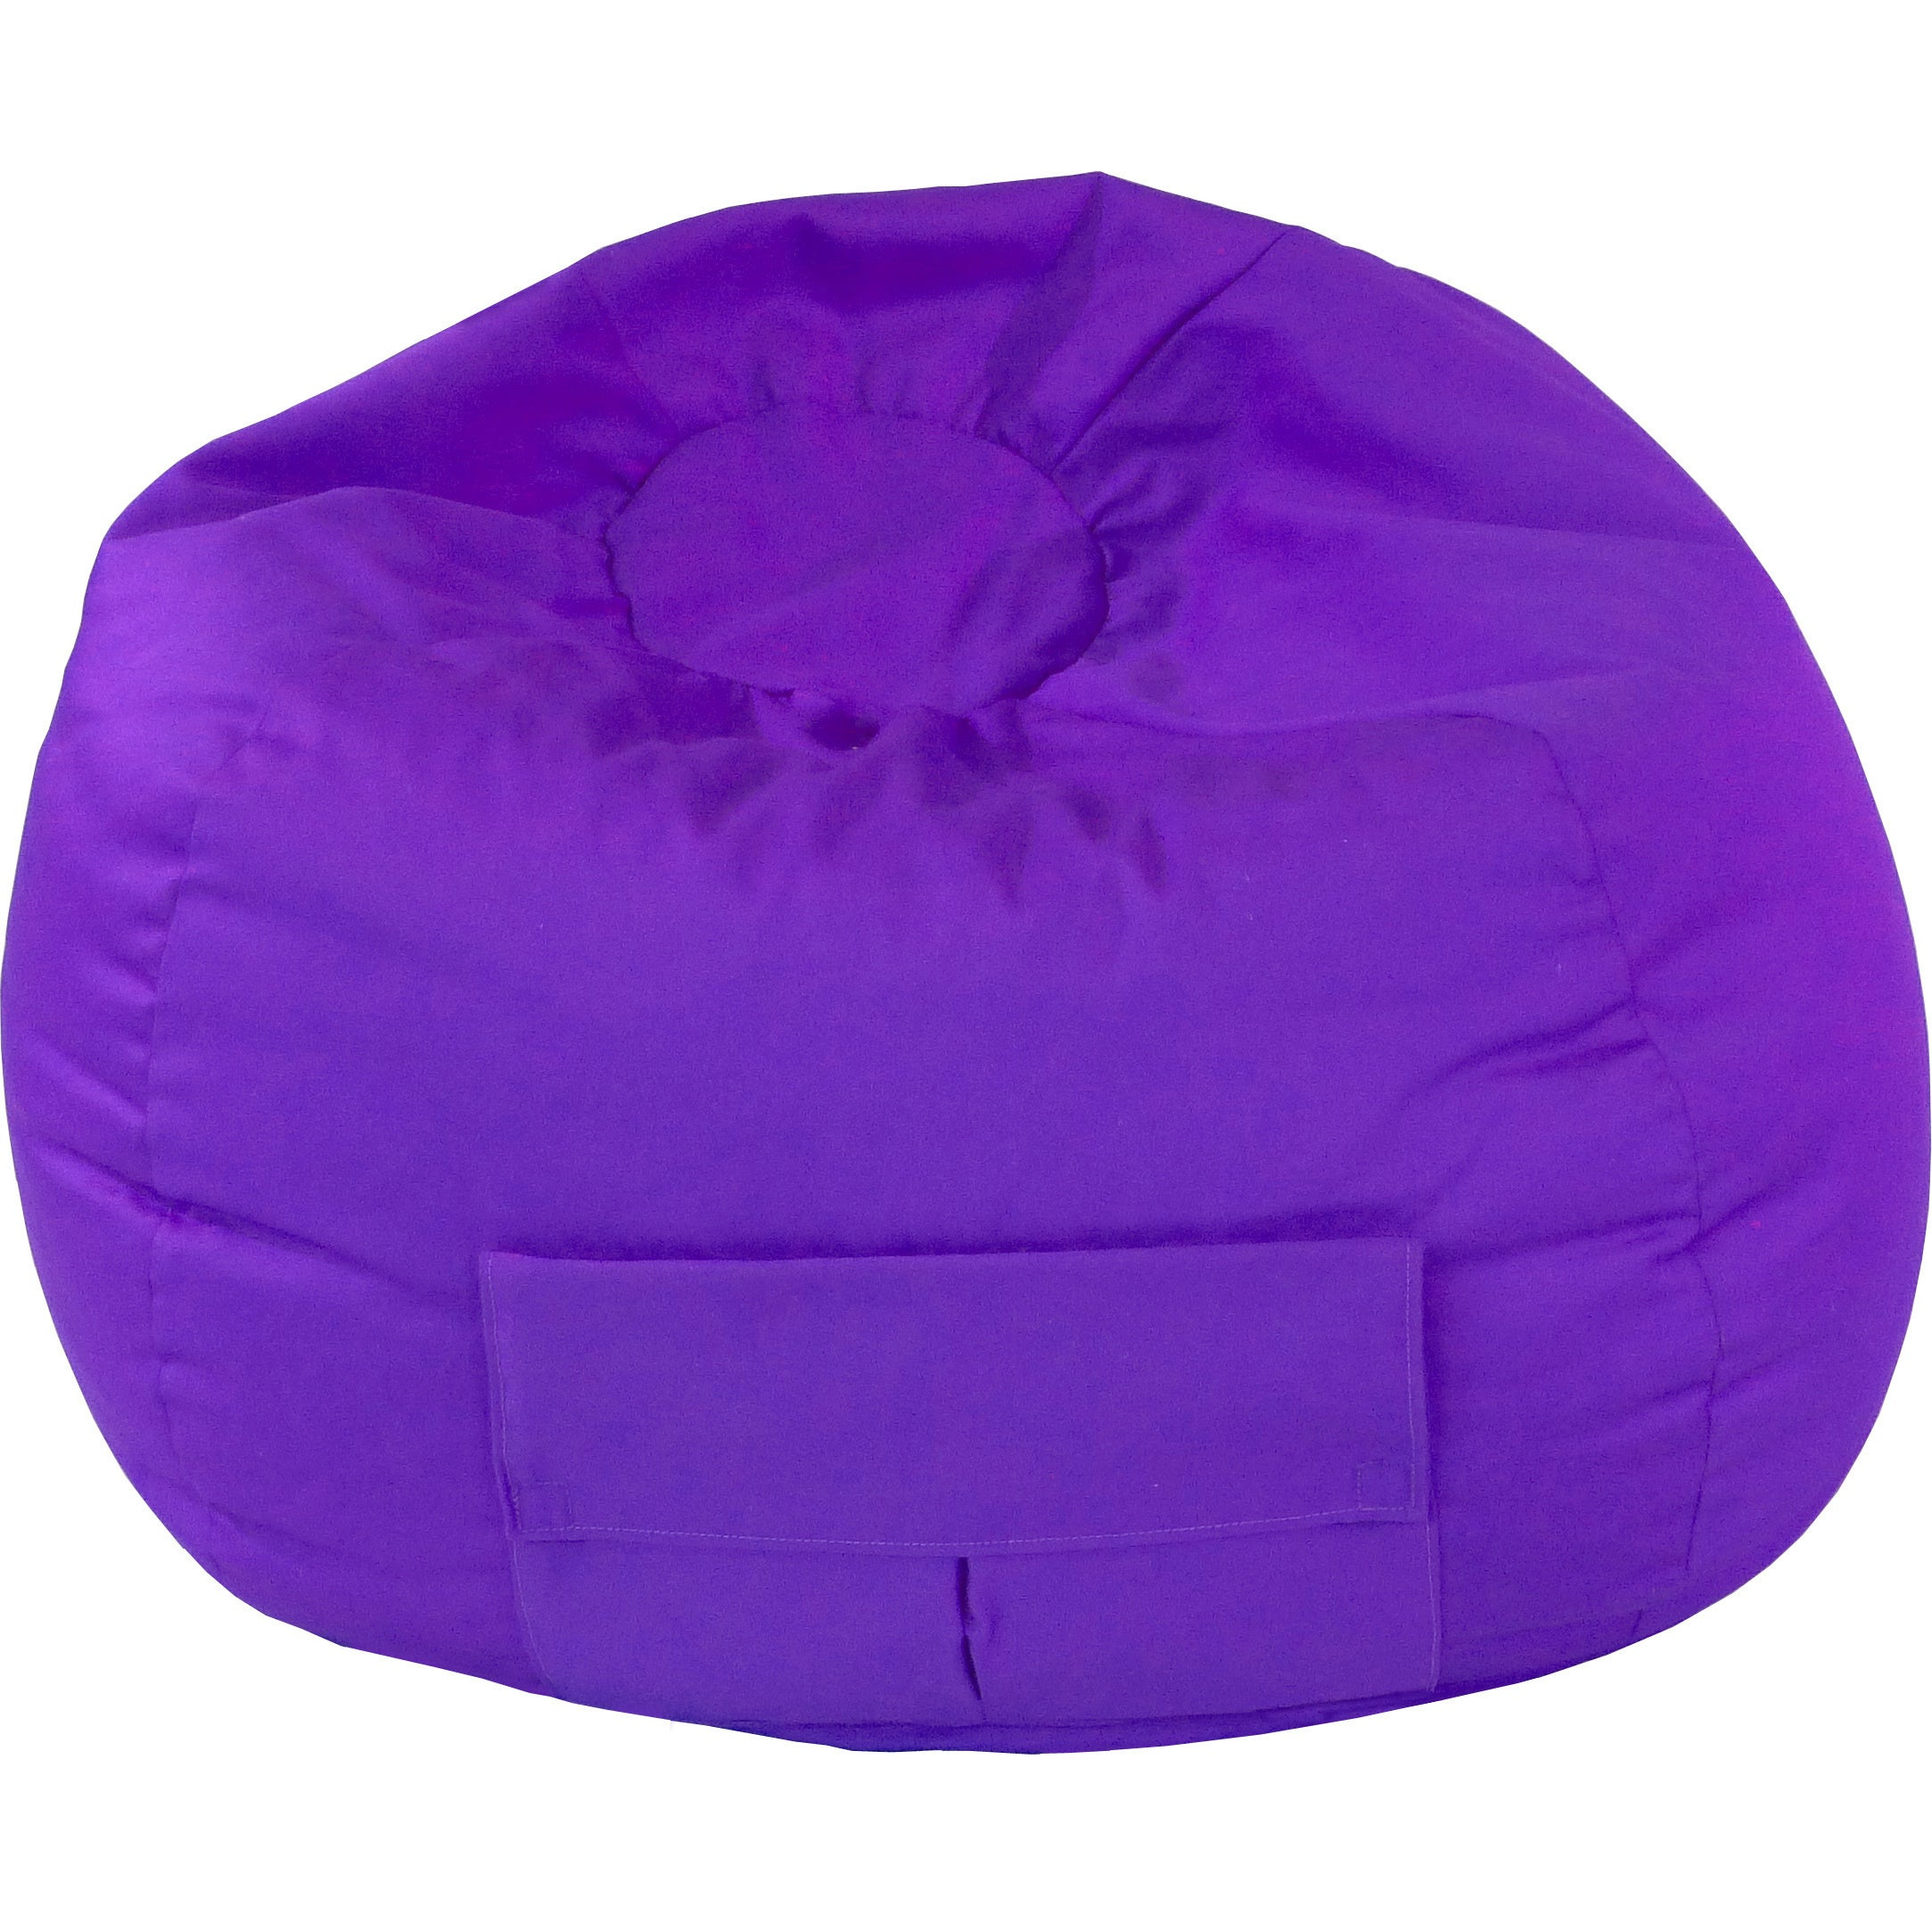 Gold Medal Hudson Industries Kids Bean Bag